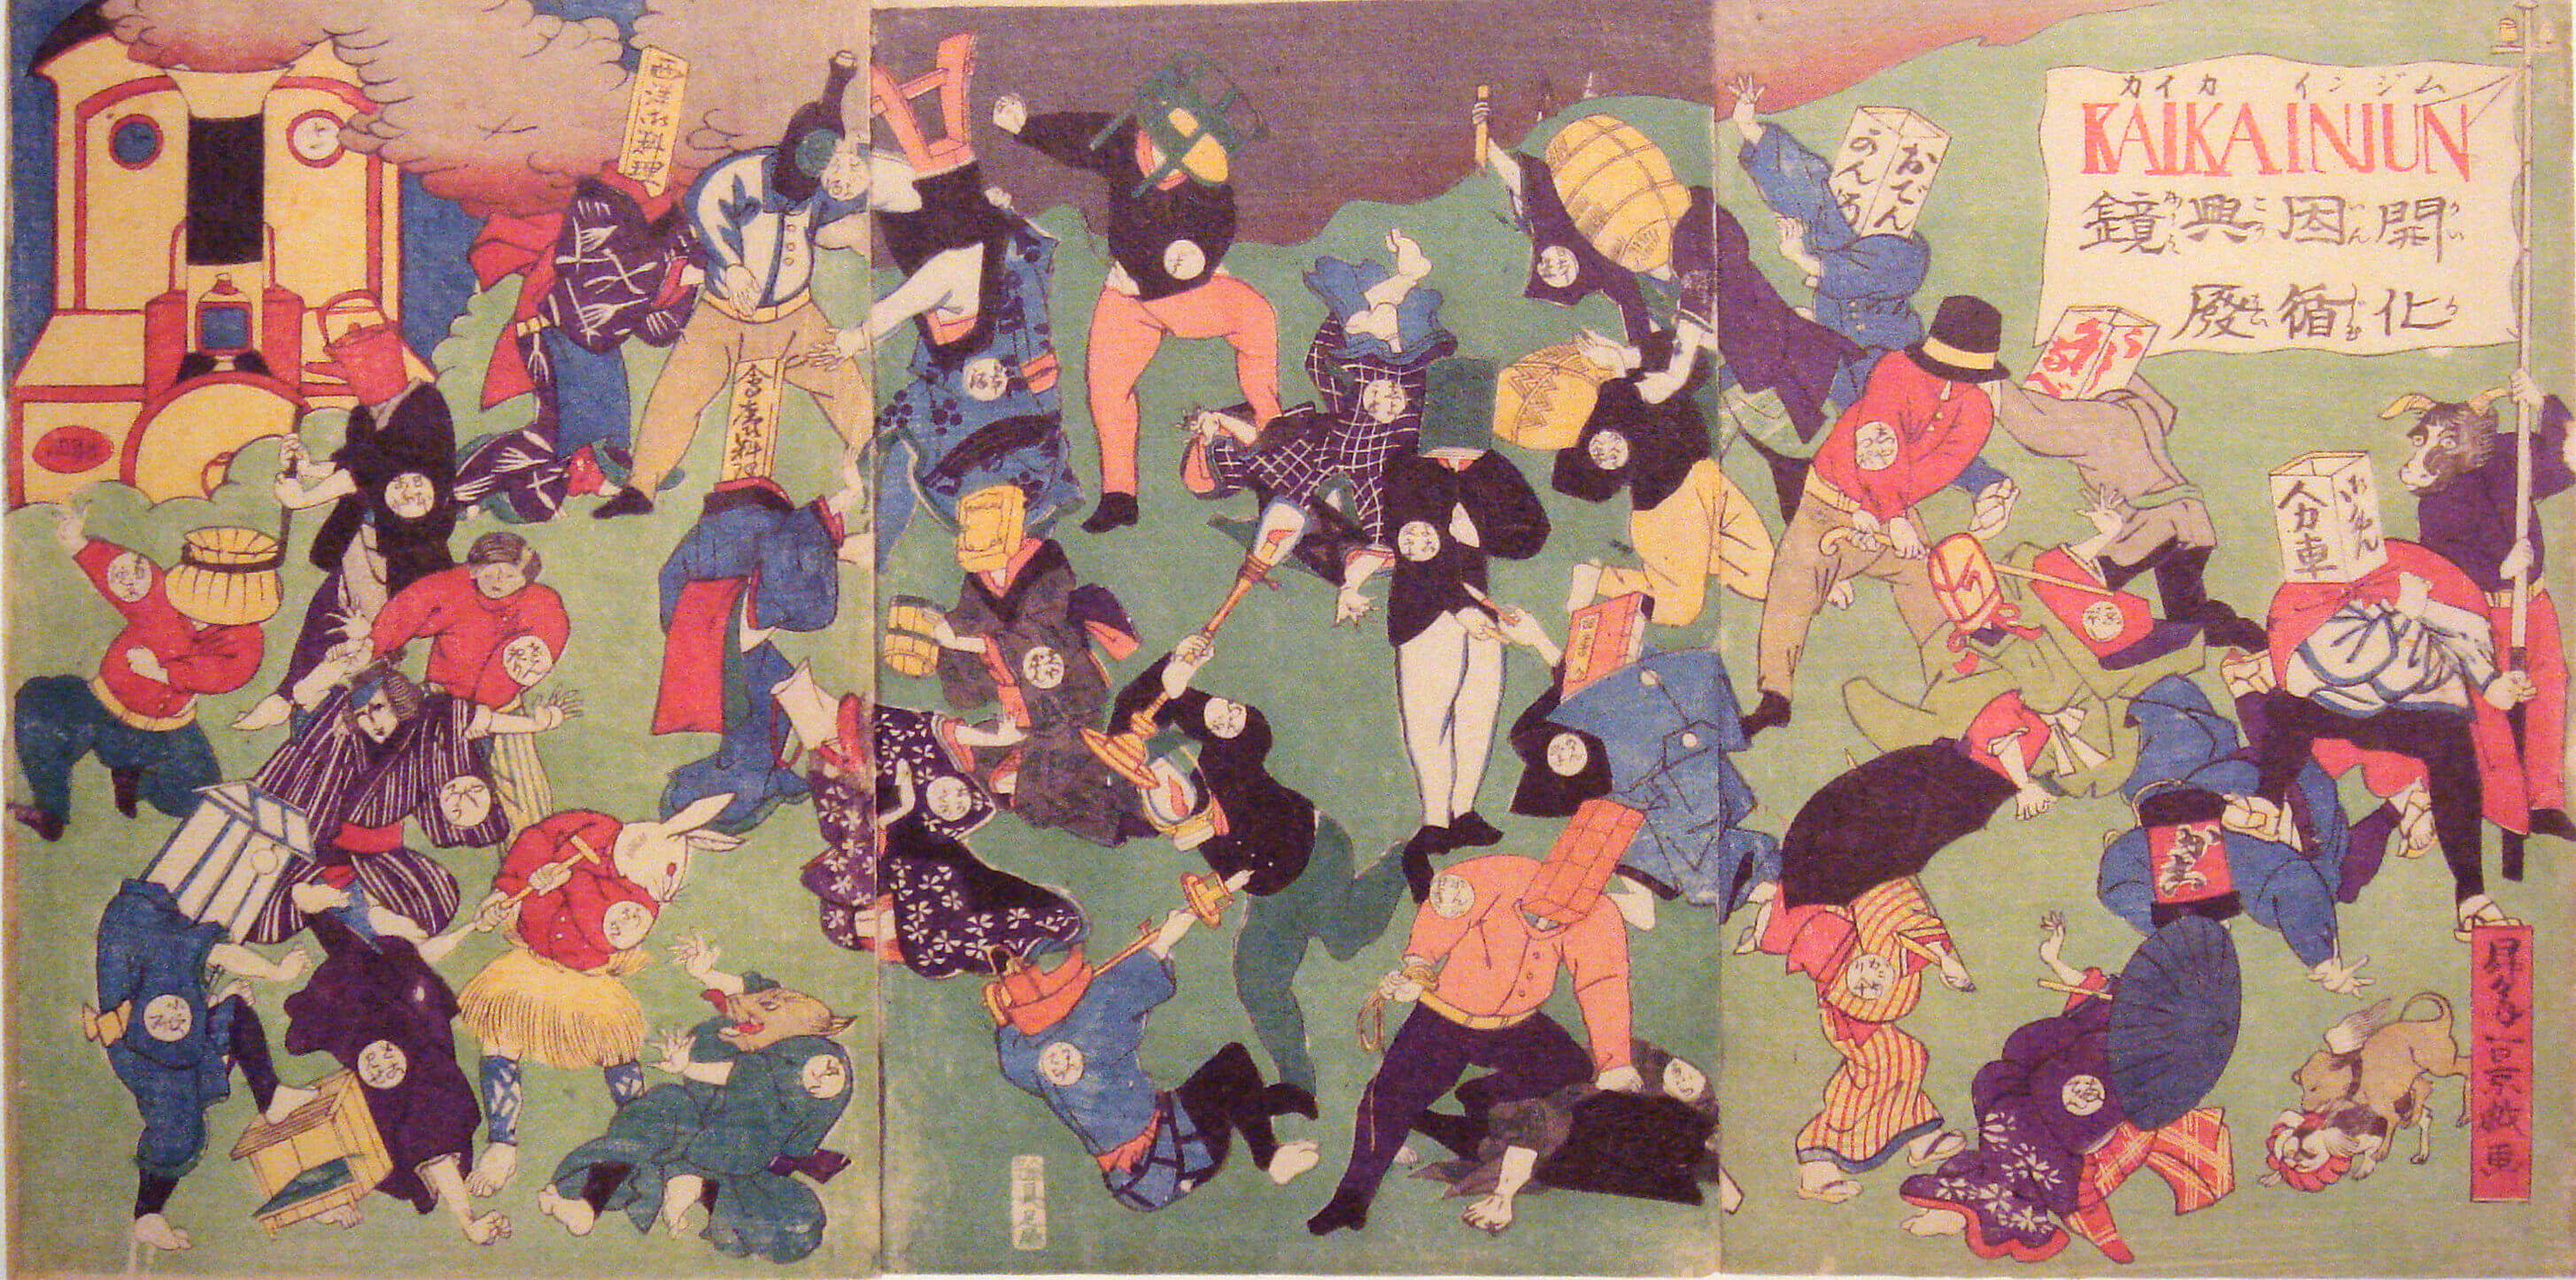 Allegory of The New Fighting The Old, artist unknown, captures the chaos of changing social structures during the Meiji Restoration.